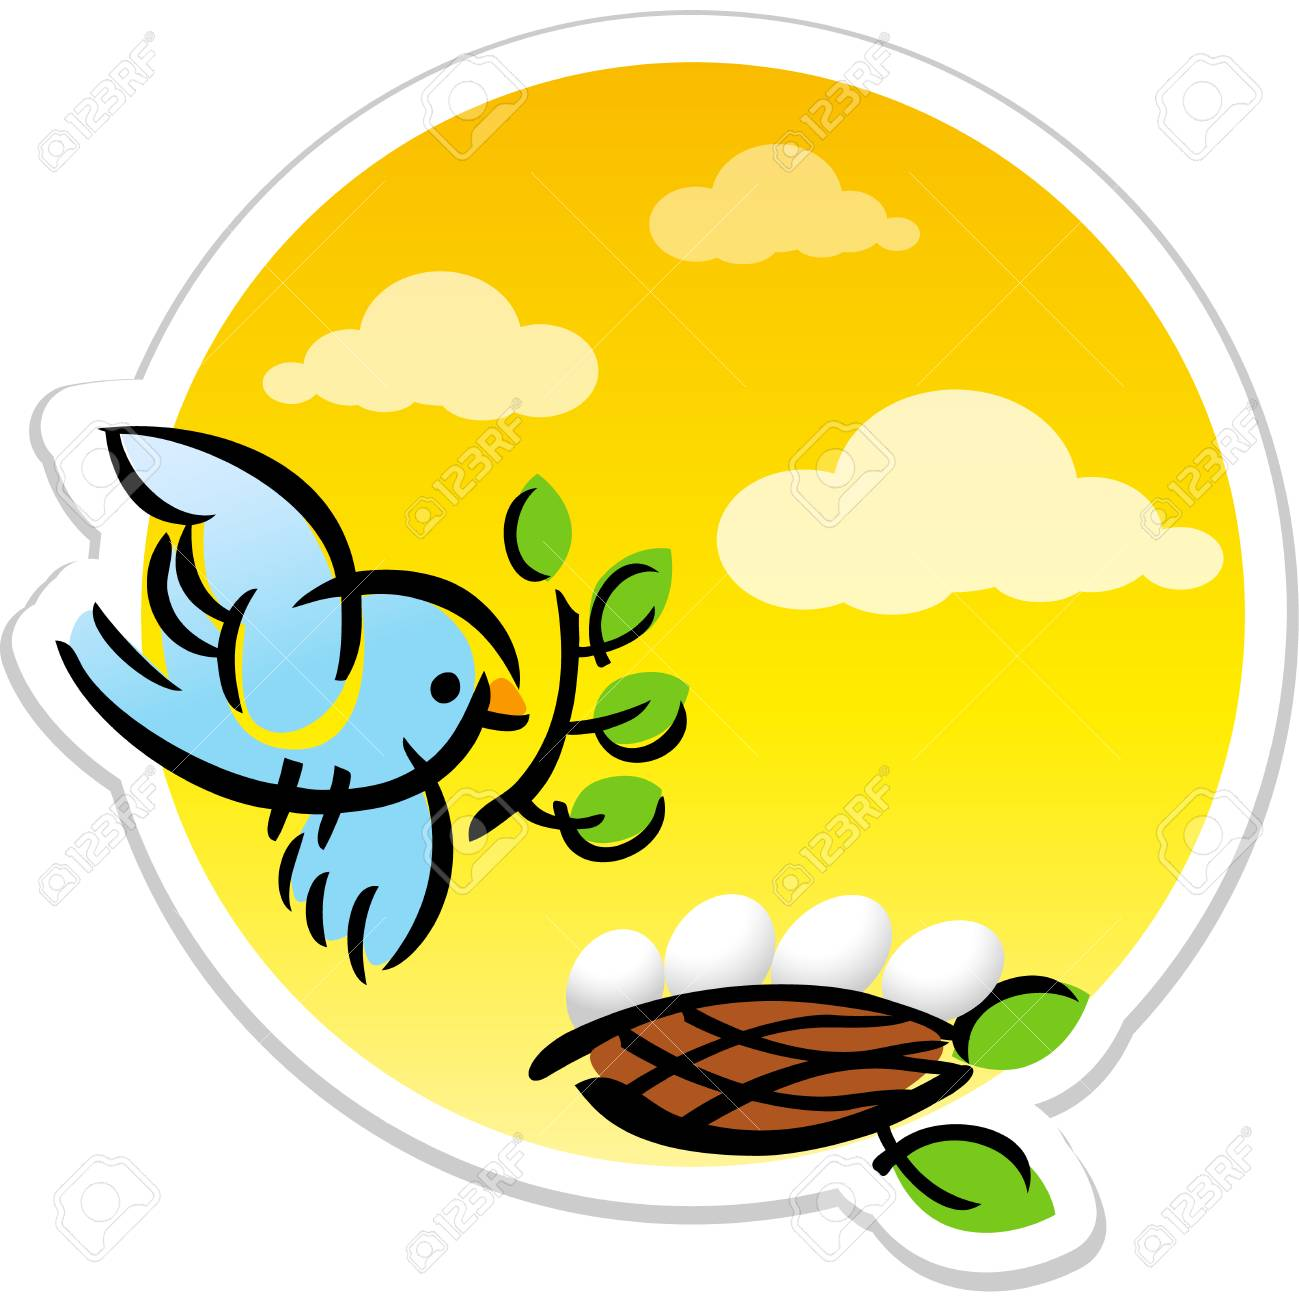 Animated Mother Bird And Eggs In Nest Vector Sticker Logo Or